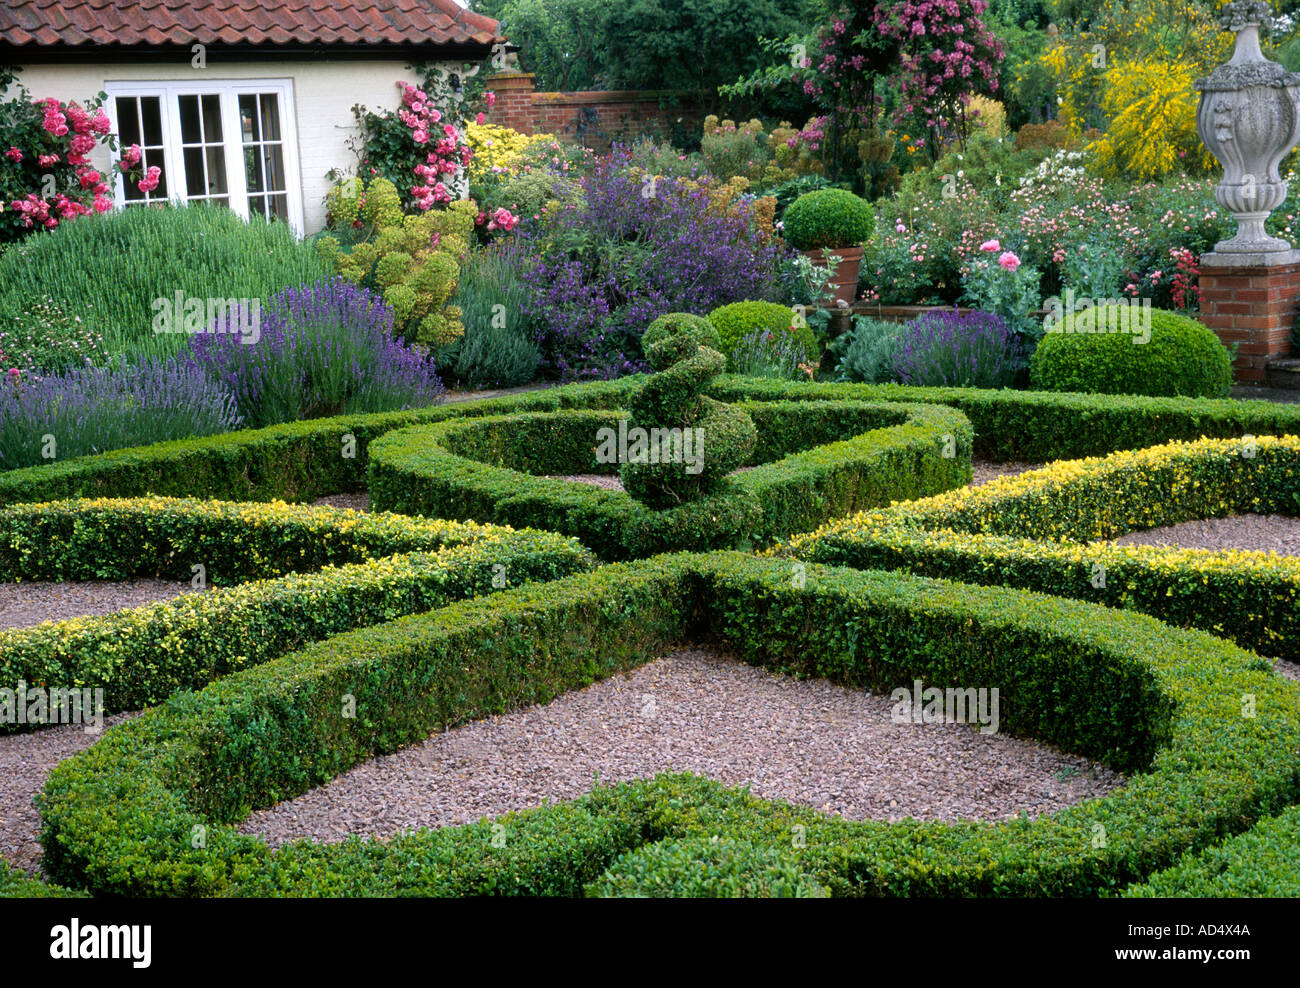 Who Is Gertrude Jekyll >> Kettle Hill, Box Hedges Norfolk England English garden design Stock Photo: 4344393 - Alamy